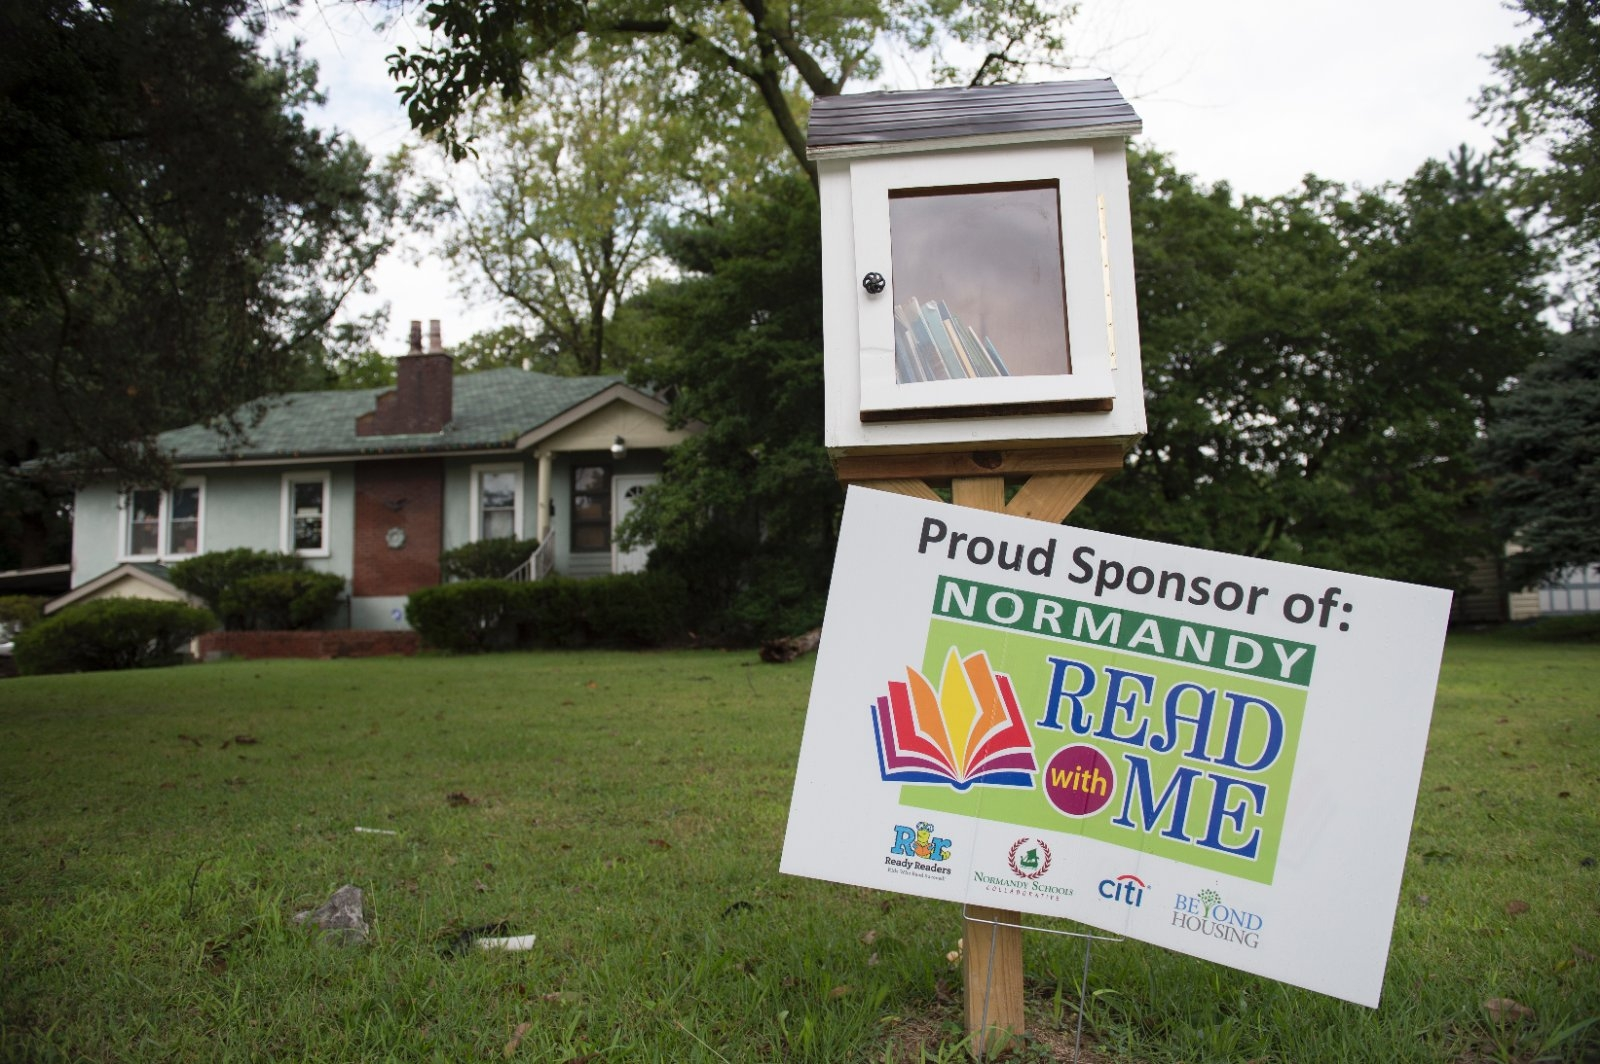 Lawn sign promoting community reading program.